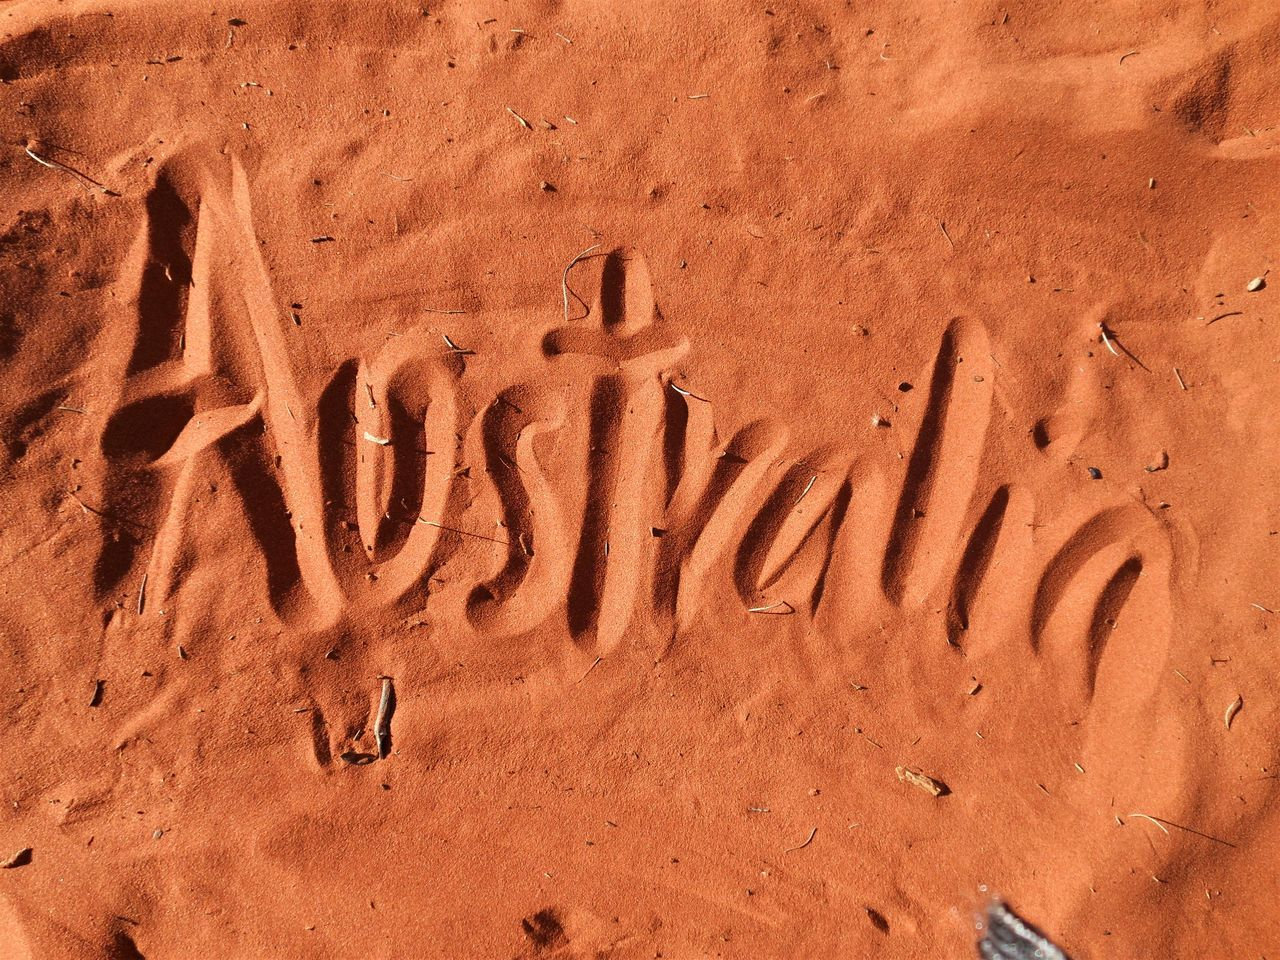 Australia written in red sand Arid Climate Australia Backgrounds Backpacking Beach Close-up Continent Desert Full Frame Hiking Imprint Nature No People Orange Outback Outdoor Outdoors Red Red Sand Sand Sand Dune Track - Imprint Travel Travel Destinations Travelling